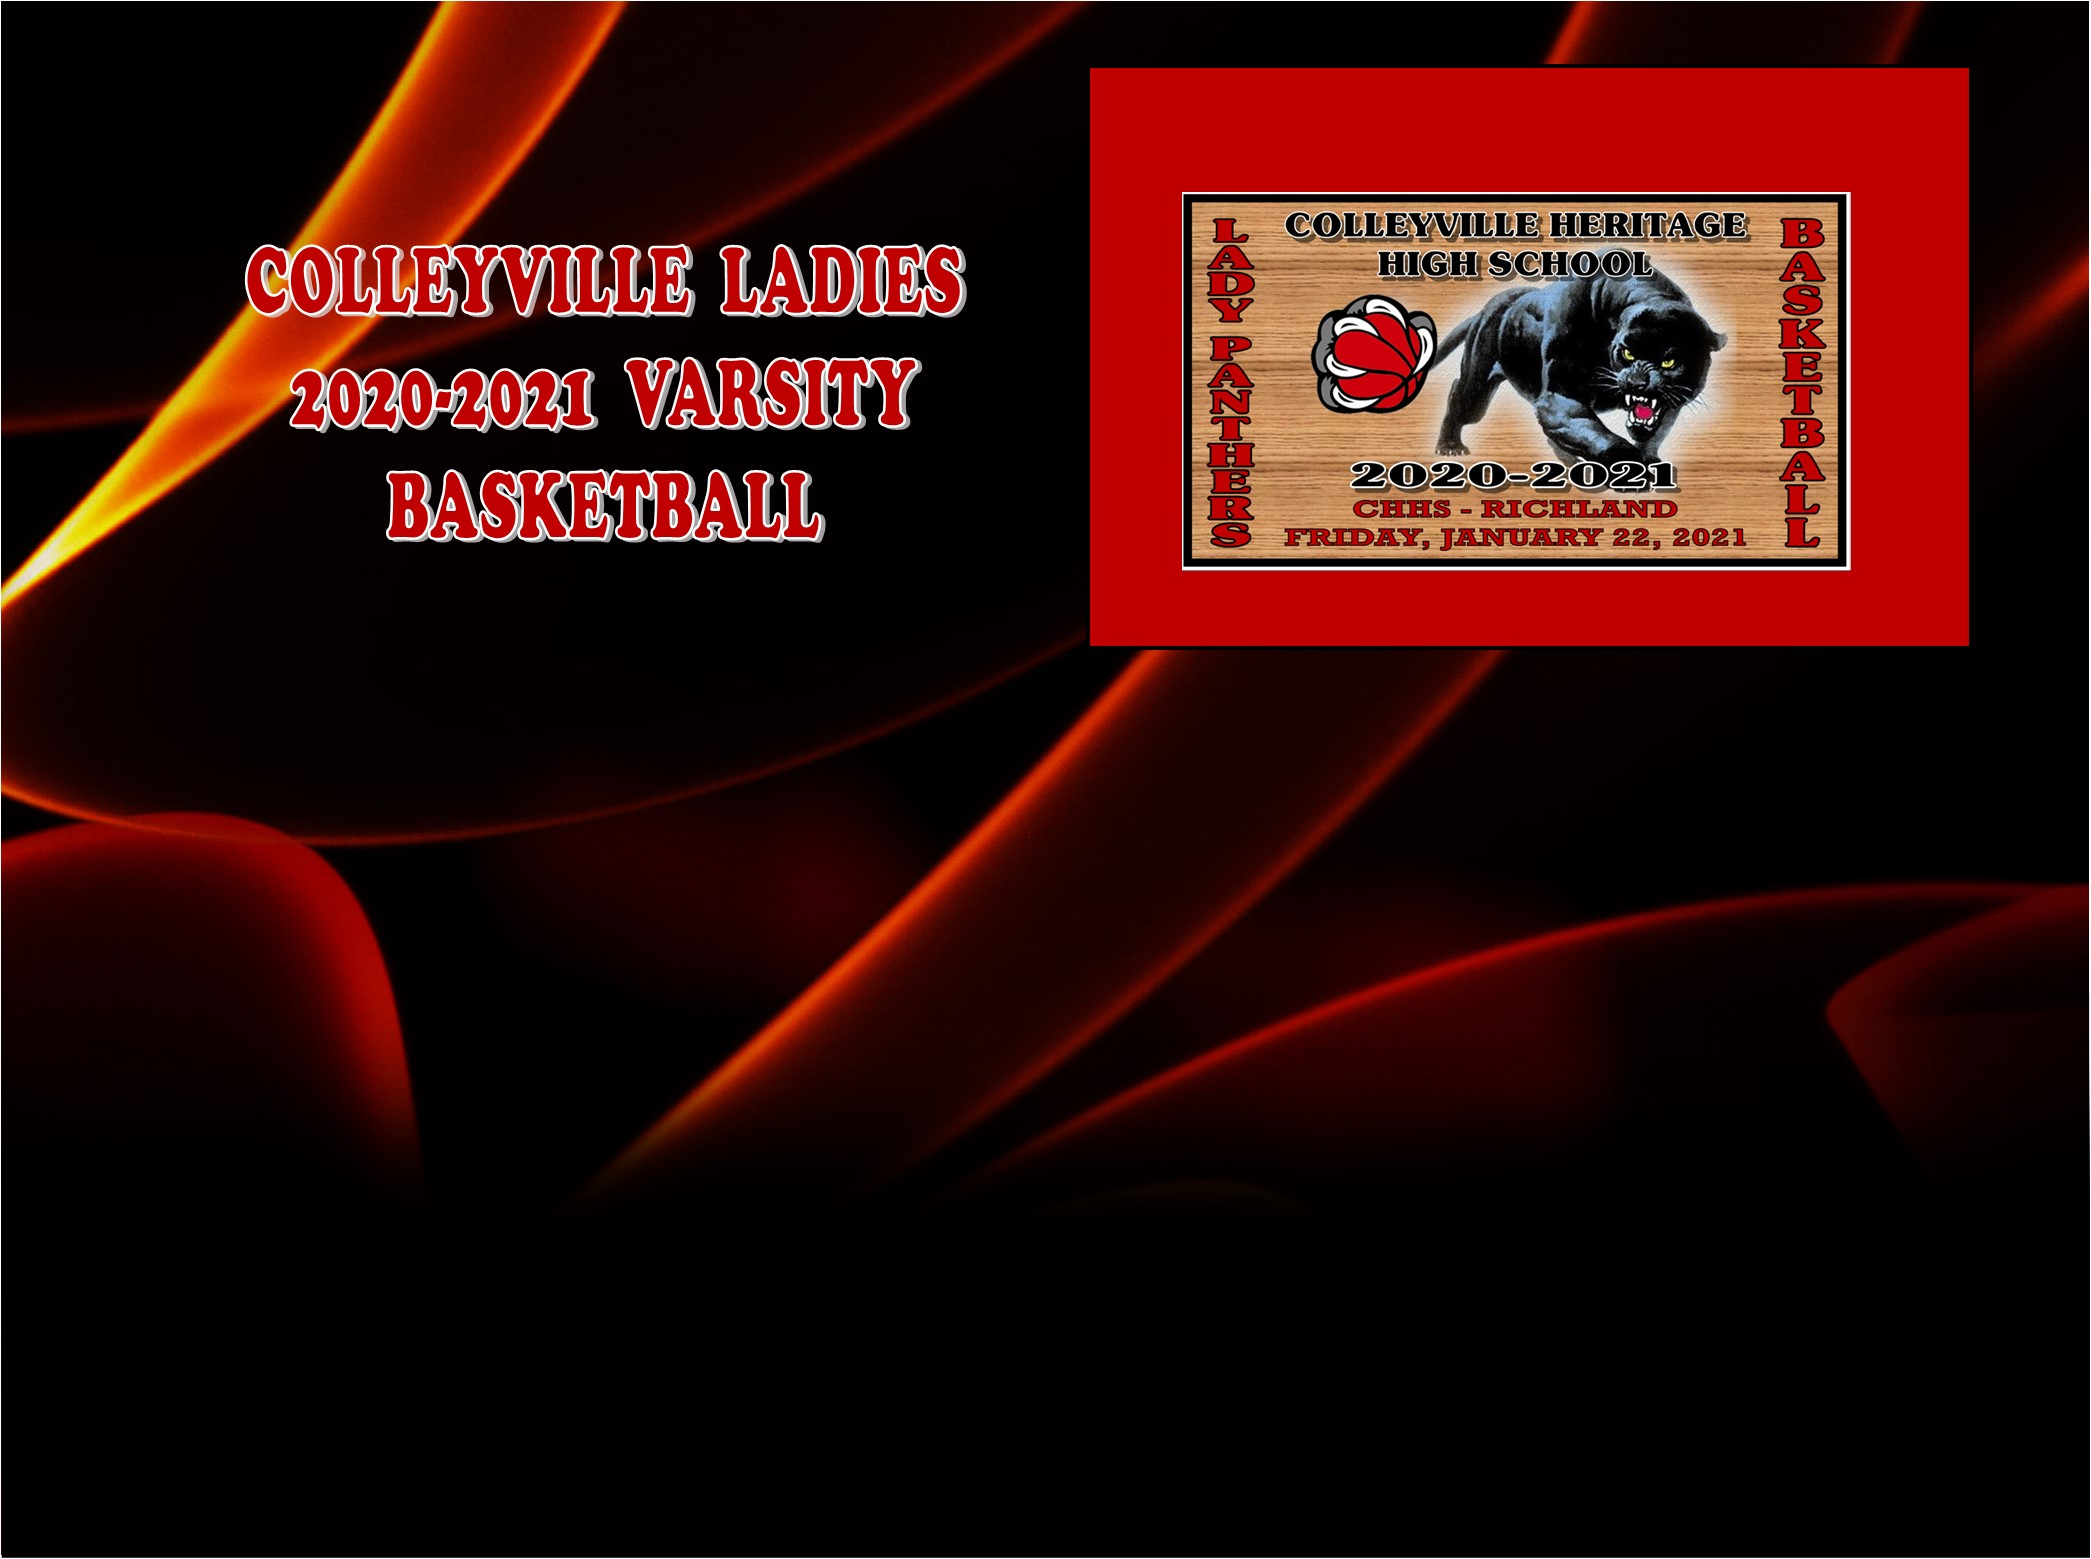 GCISD Ladies Basketball: Colleyville Panthers Overpower Richland Royals 44-29